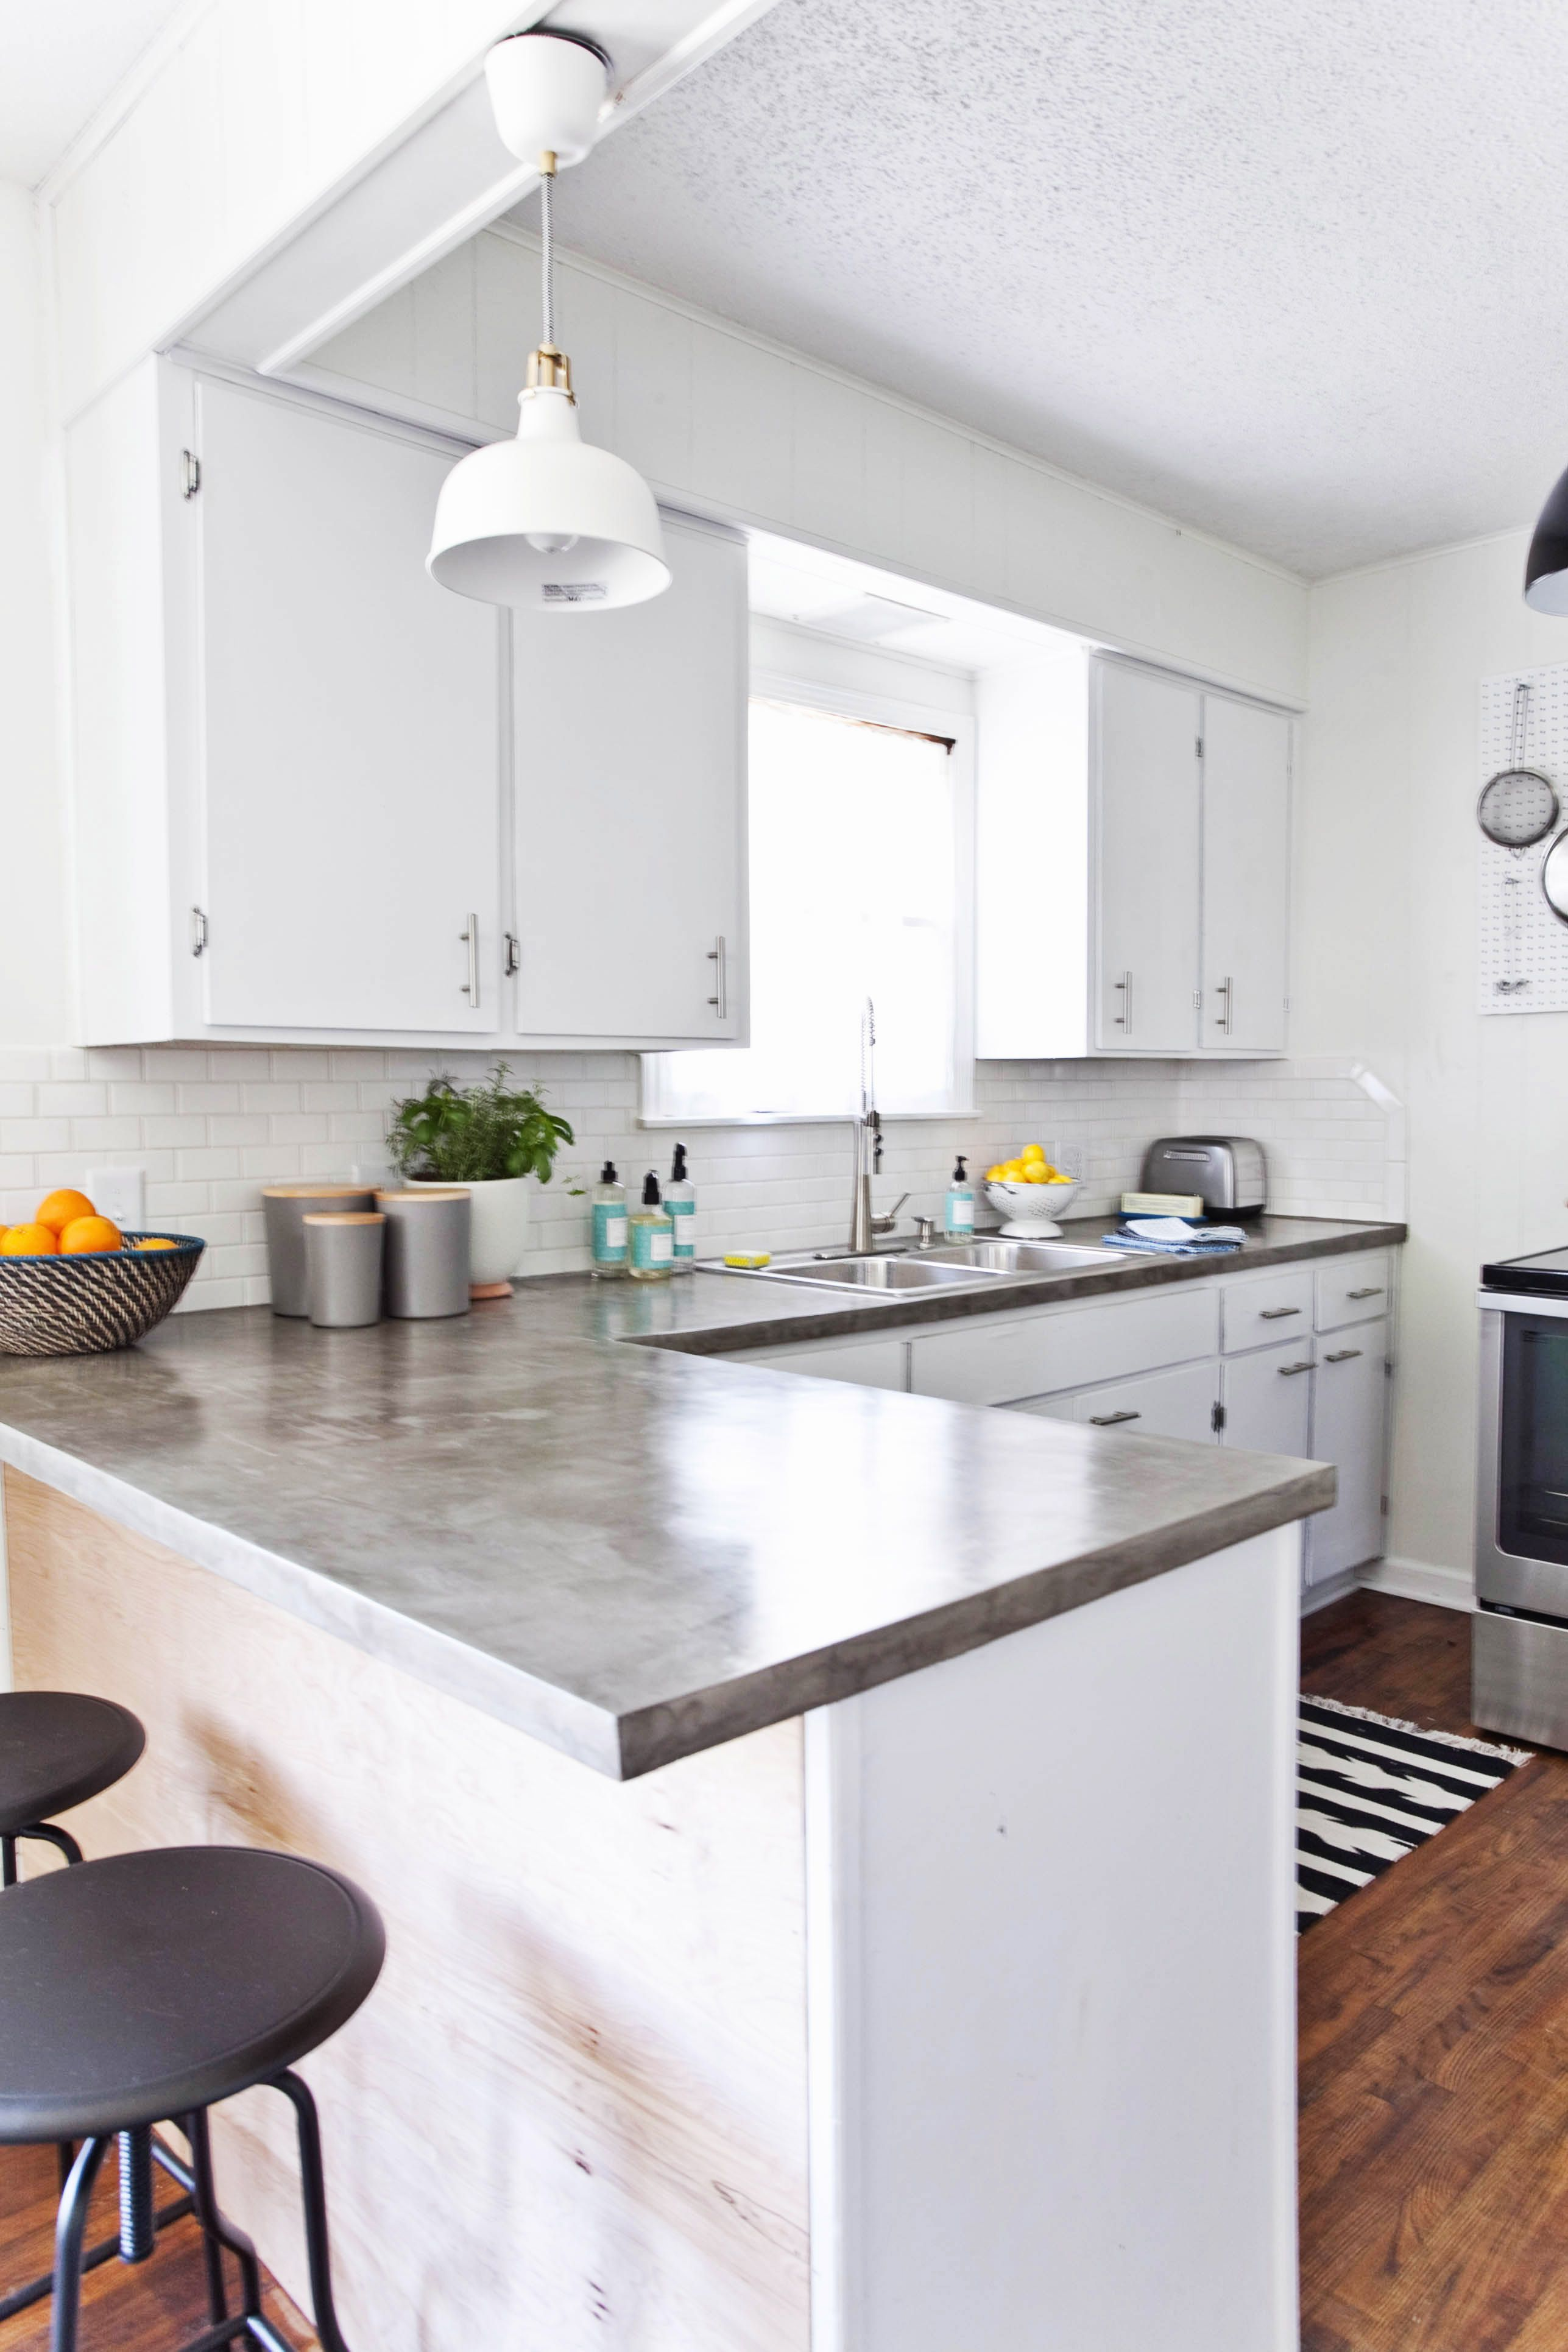 11 Times White Kitchen Cabinets Transformed A Space | Elle decor ...